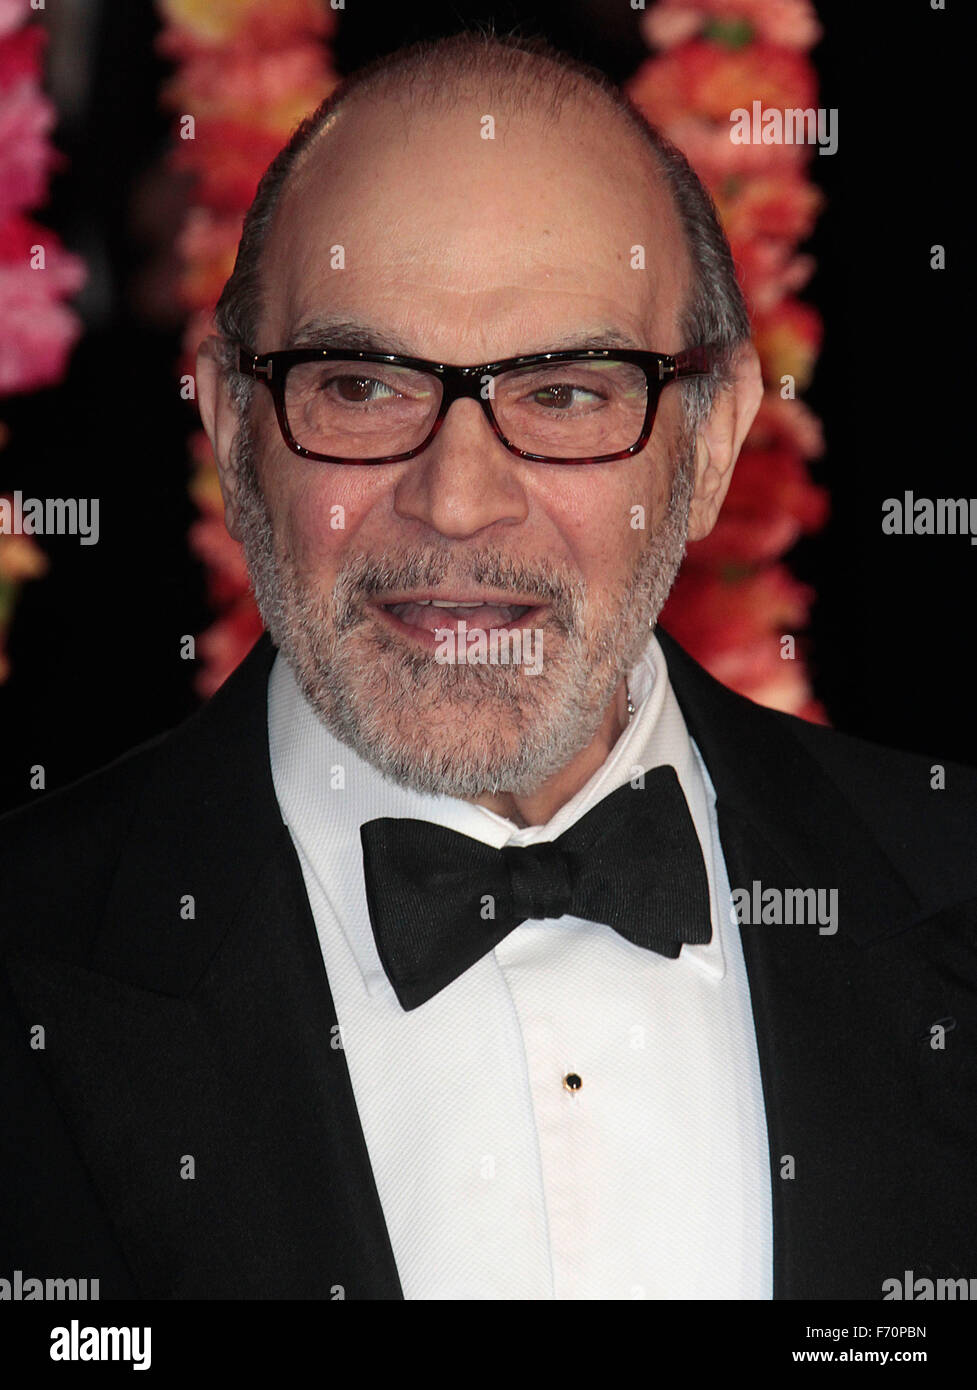 Feb 17, 2015 - London, England, UK - David Suchet at The Royal Film Performance: 'The Second Best Exotic Marigold - Stock Image